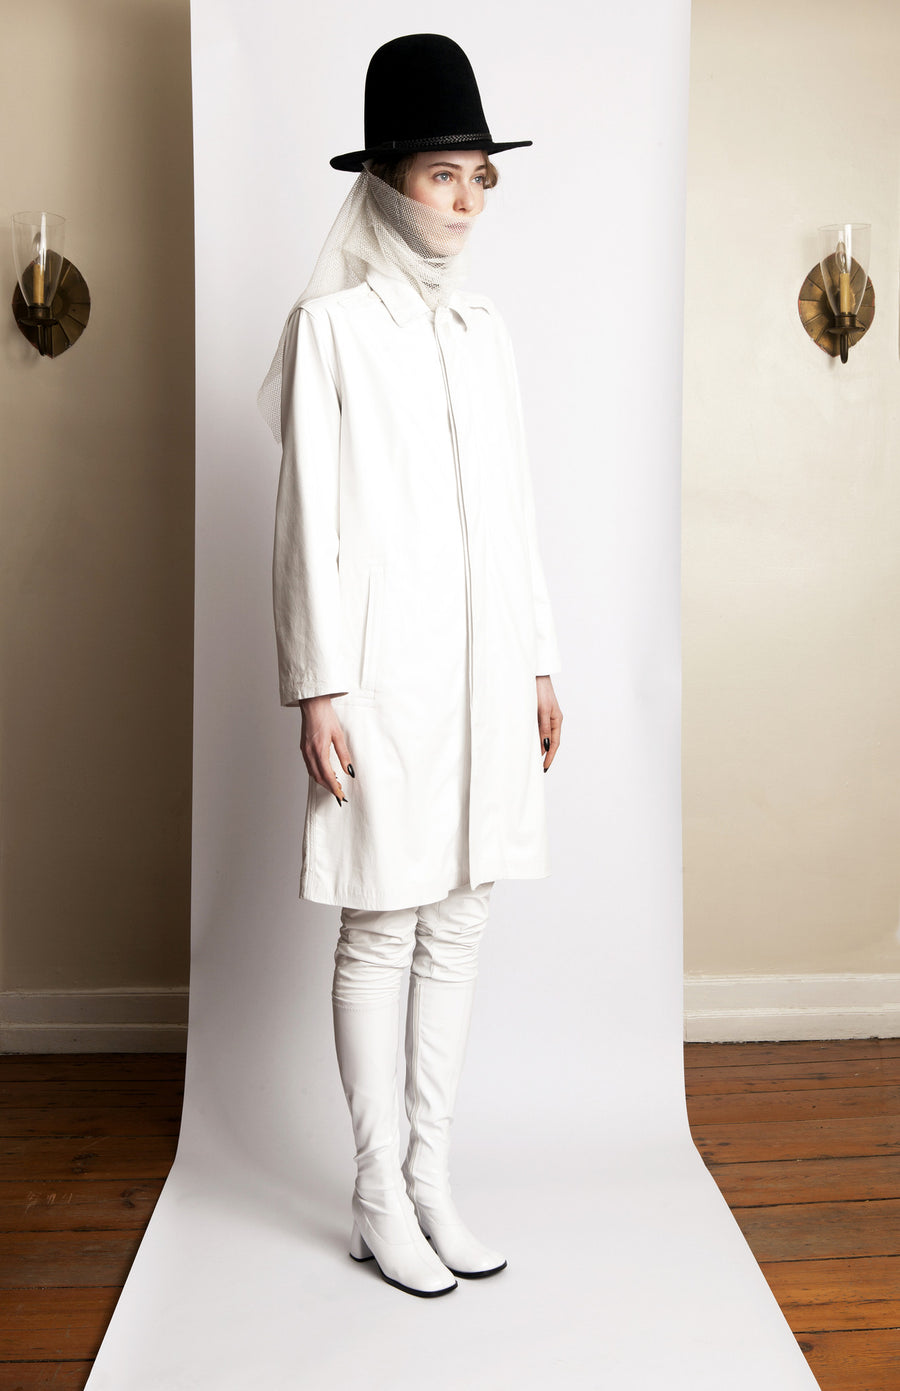 Basia IMG Model Wendy Nichol Clothing Designer Ready to Wear Fashion Runway Show AW13 Witch Lessons Winter White Plonge Leather Coat White Leather Pants Tight Handmade in NYC Custom Tailoring Fitting Size Color Fabric Handmade in NYC Made to Measure custom White witch El Topo felt hat